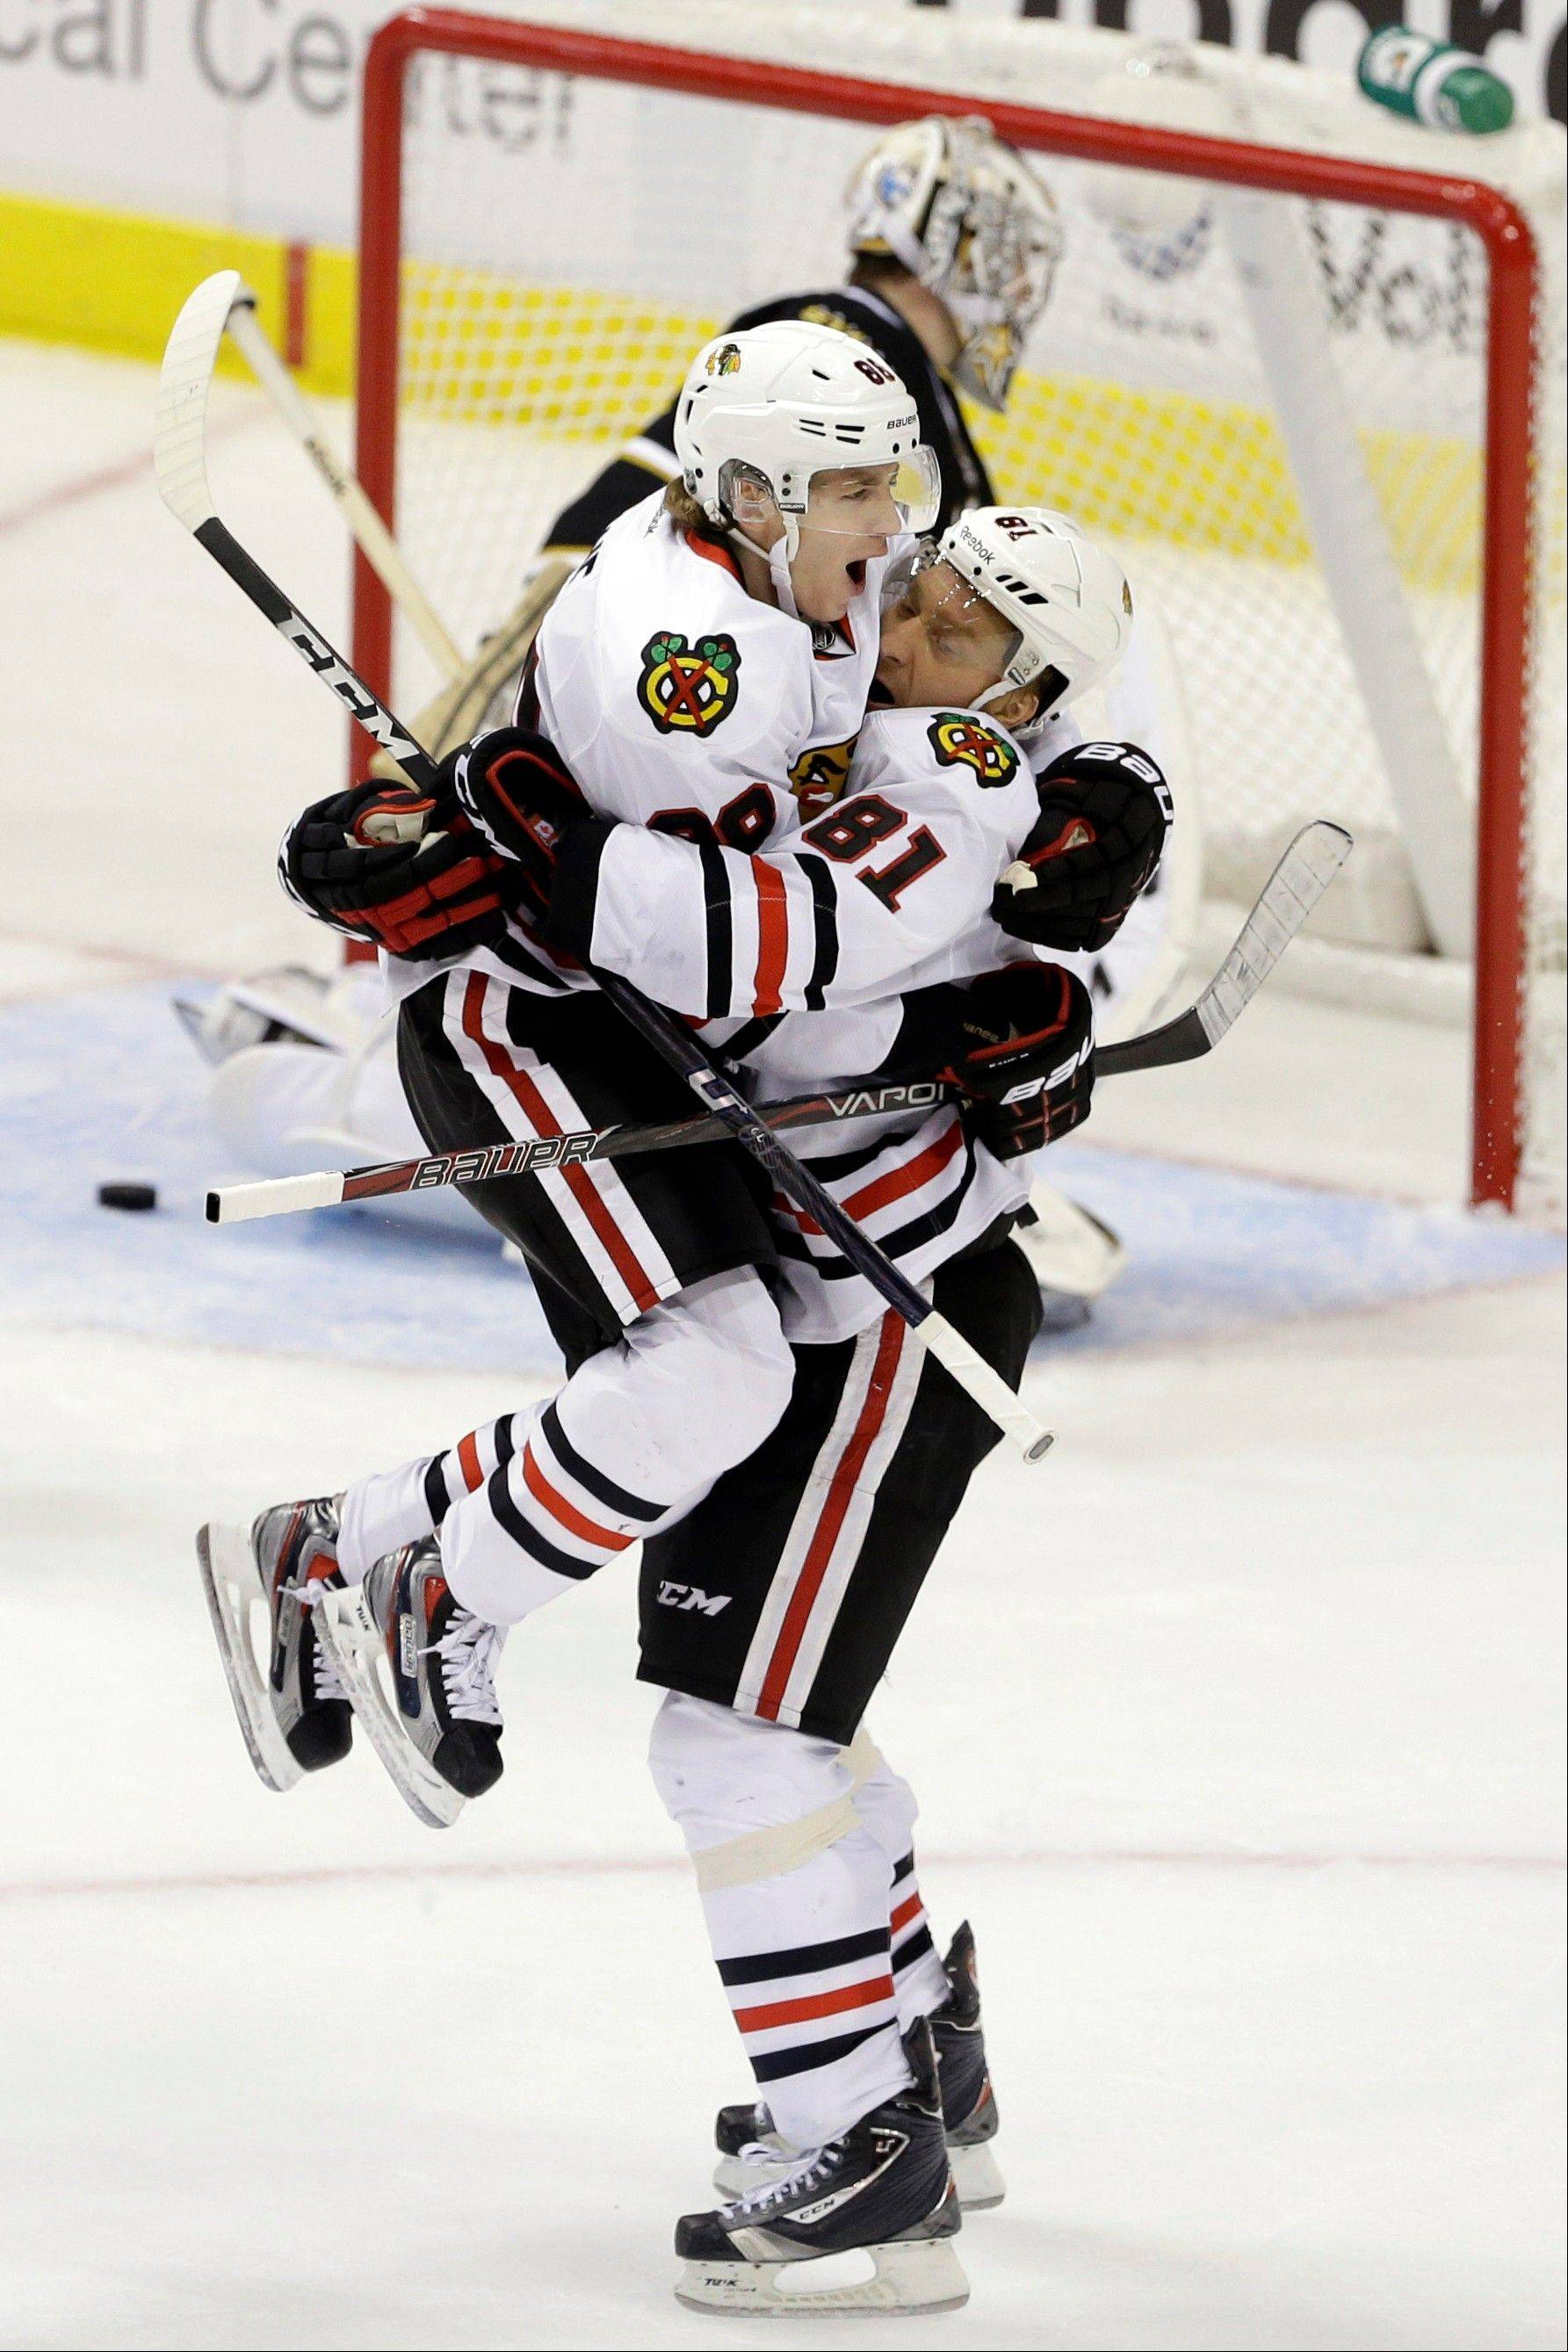 Chicago Blackhawks' Patrick Kane is lifted by Marian Hossa (81) as they celebrate Hossa's overtime goal against Dallas Stars goalie Kari Lehtonen on Thursday night. The Blackhawks won 3-2.